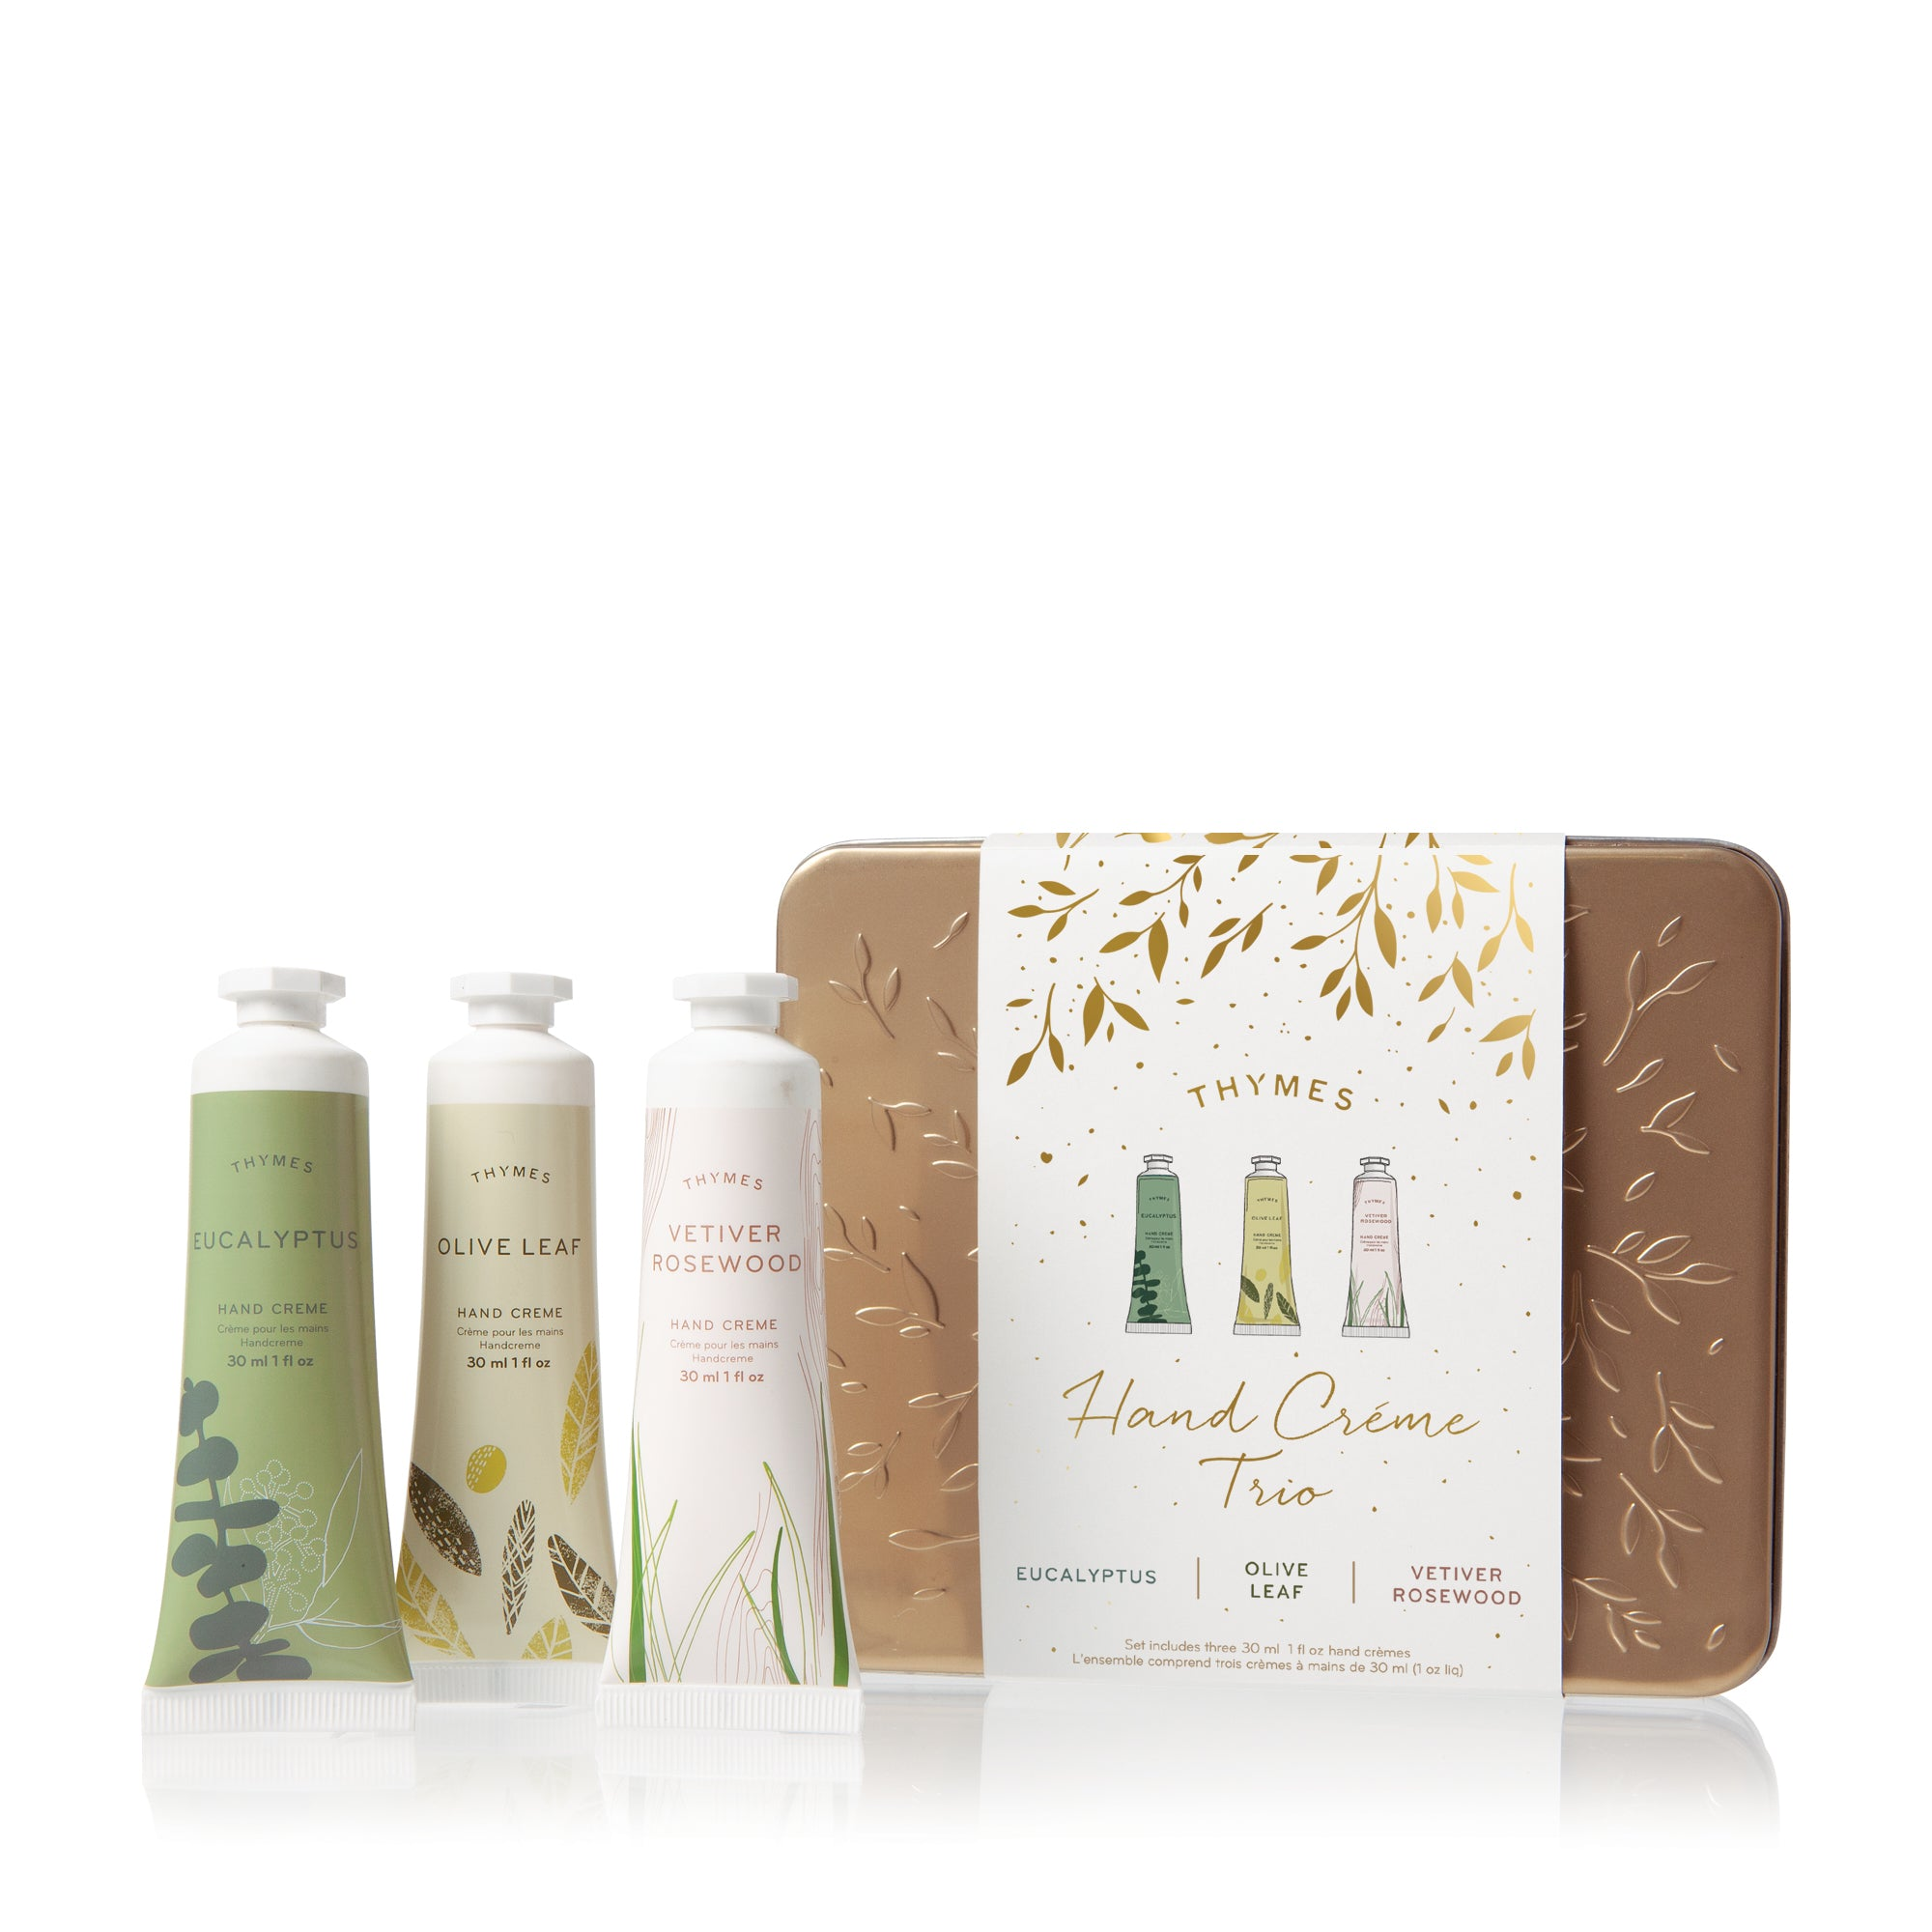 Eucalyptus, Olive Leaf and Vetiver Rosewood Hand Cream Trio